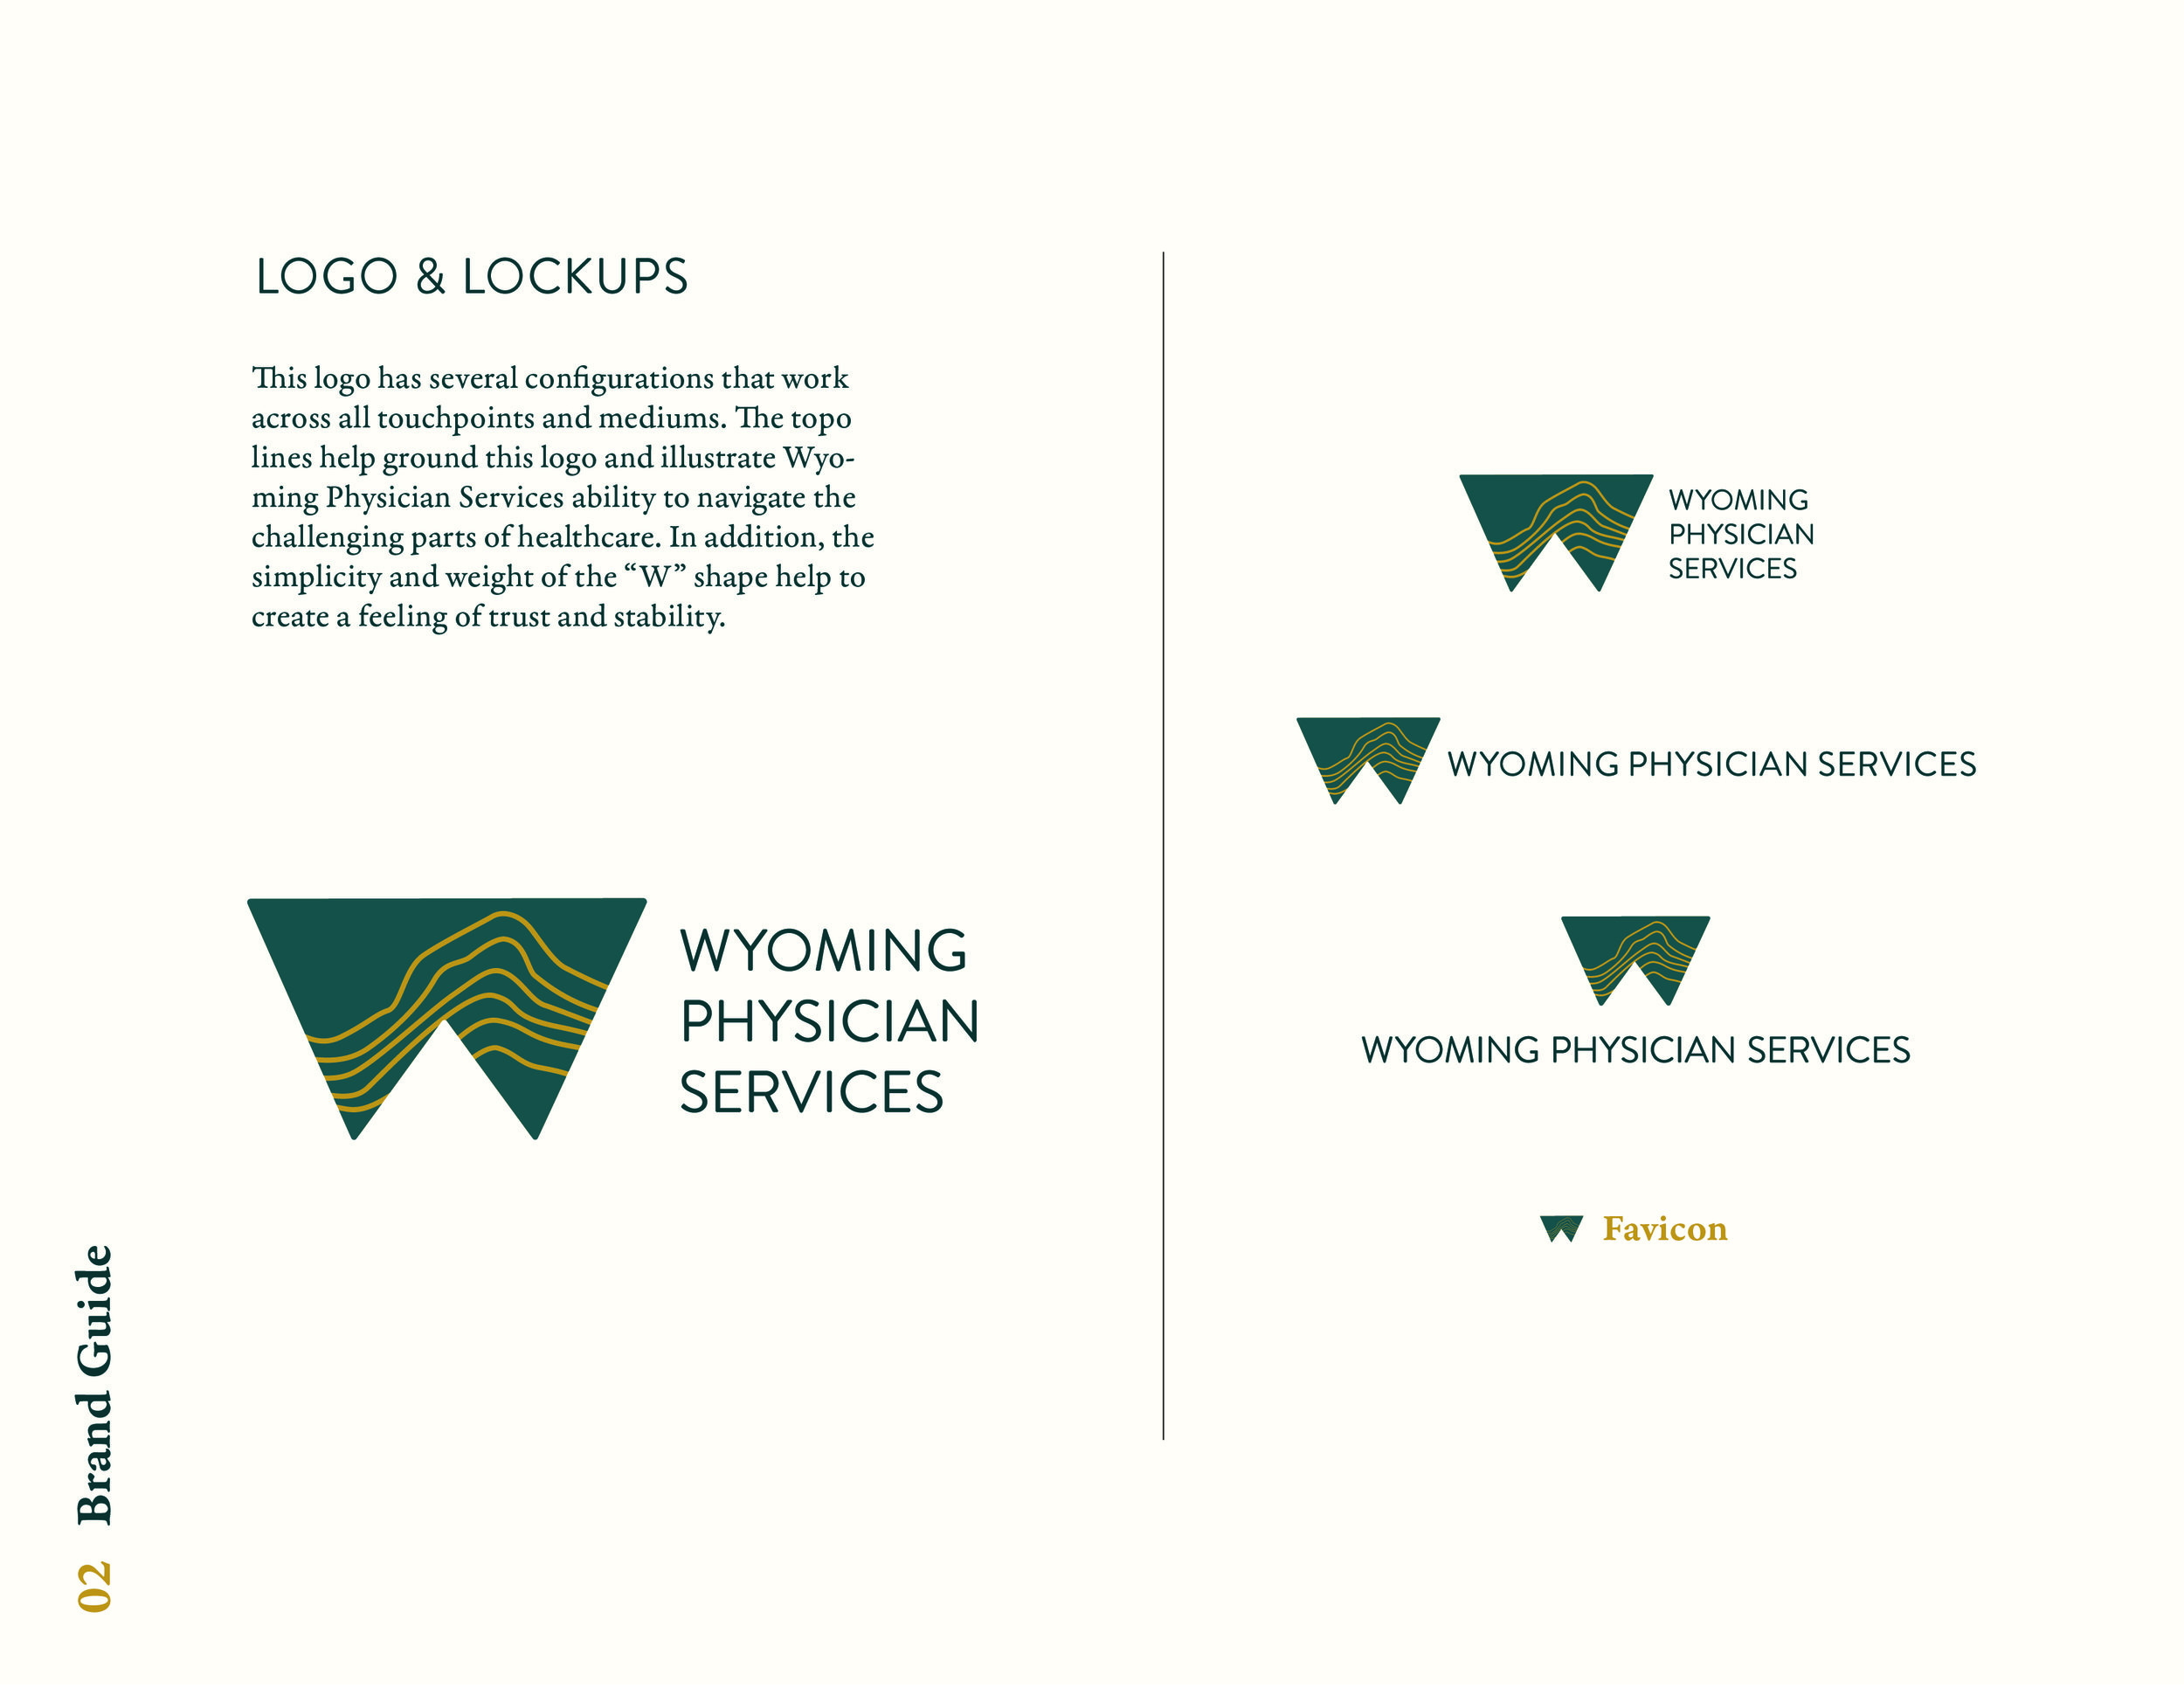 Wyoming Physician Services Brand Guide_222019_Logo & Lockups.jpg